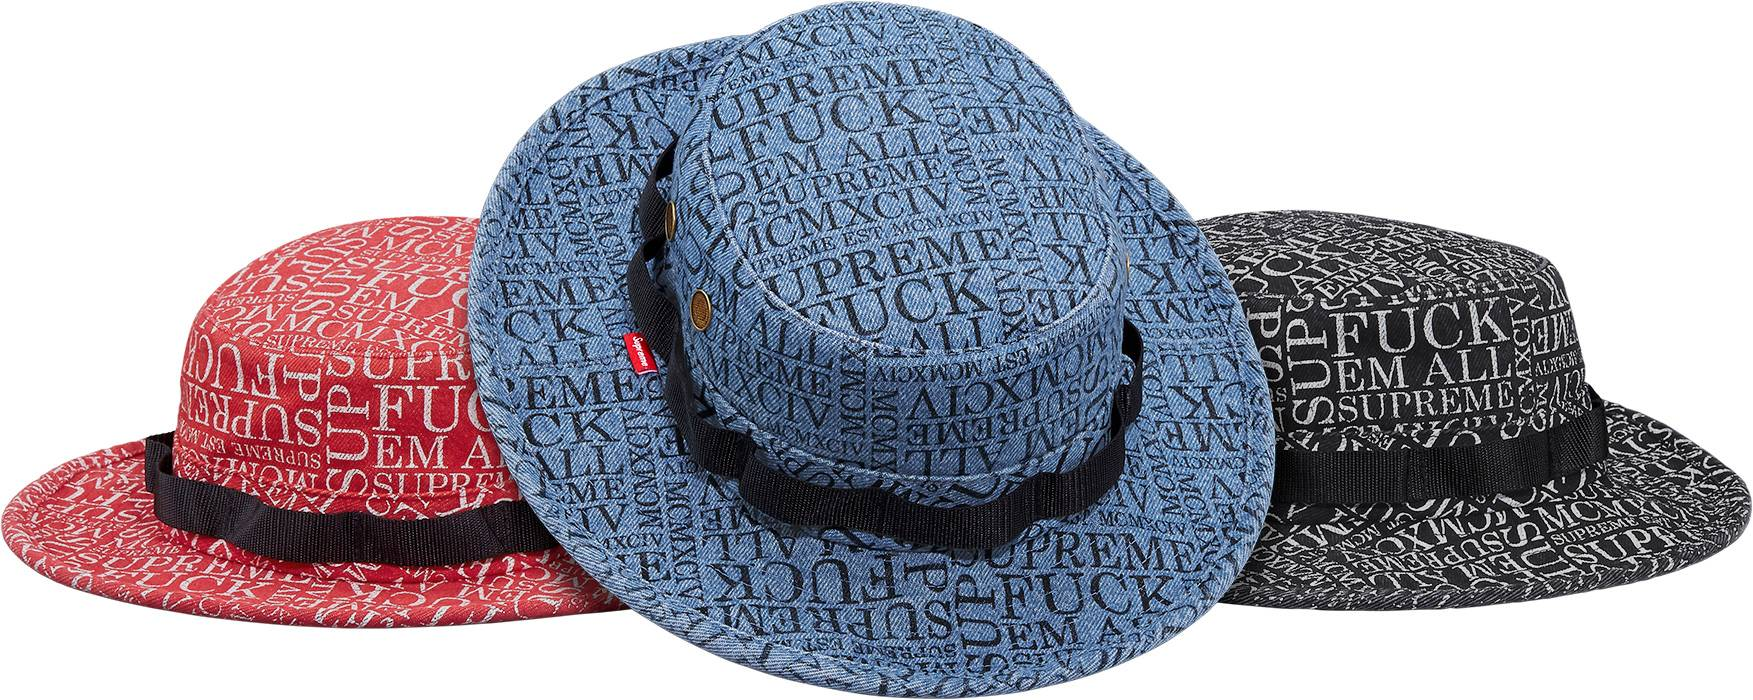 659d8a0feab Supreme Fuck  Em All Denim Boonie (Red) Size one size - Periodicals ...